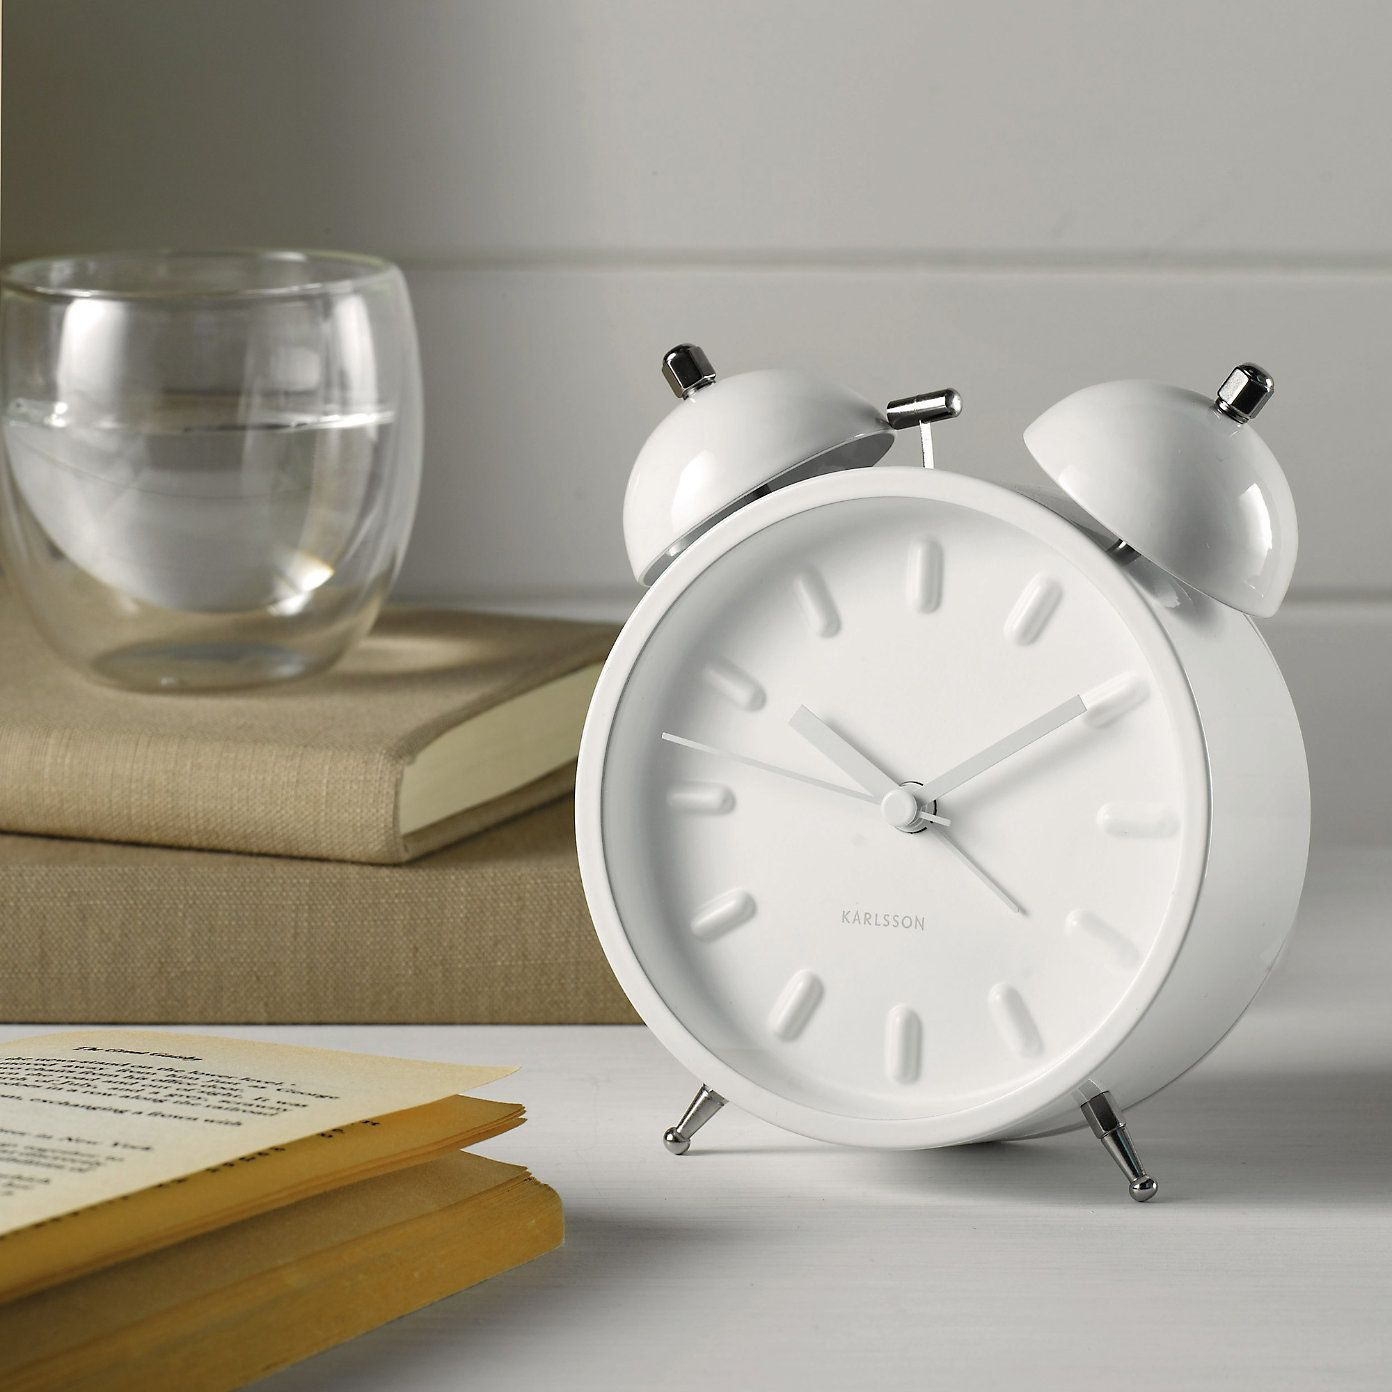 white small karlsson alarm clock the white company 10273 | 7241549dd0403048be14a9b20f508191